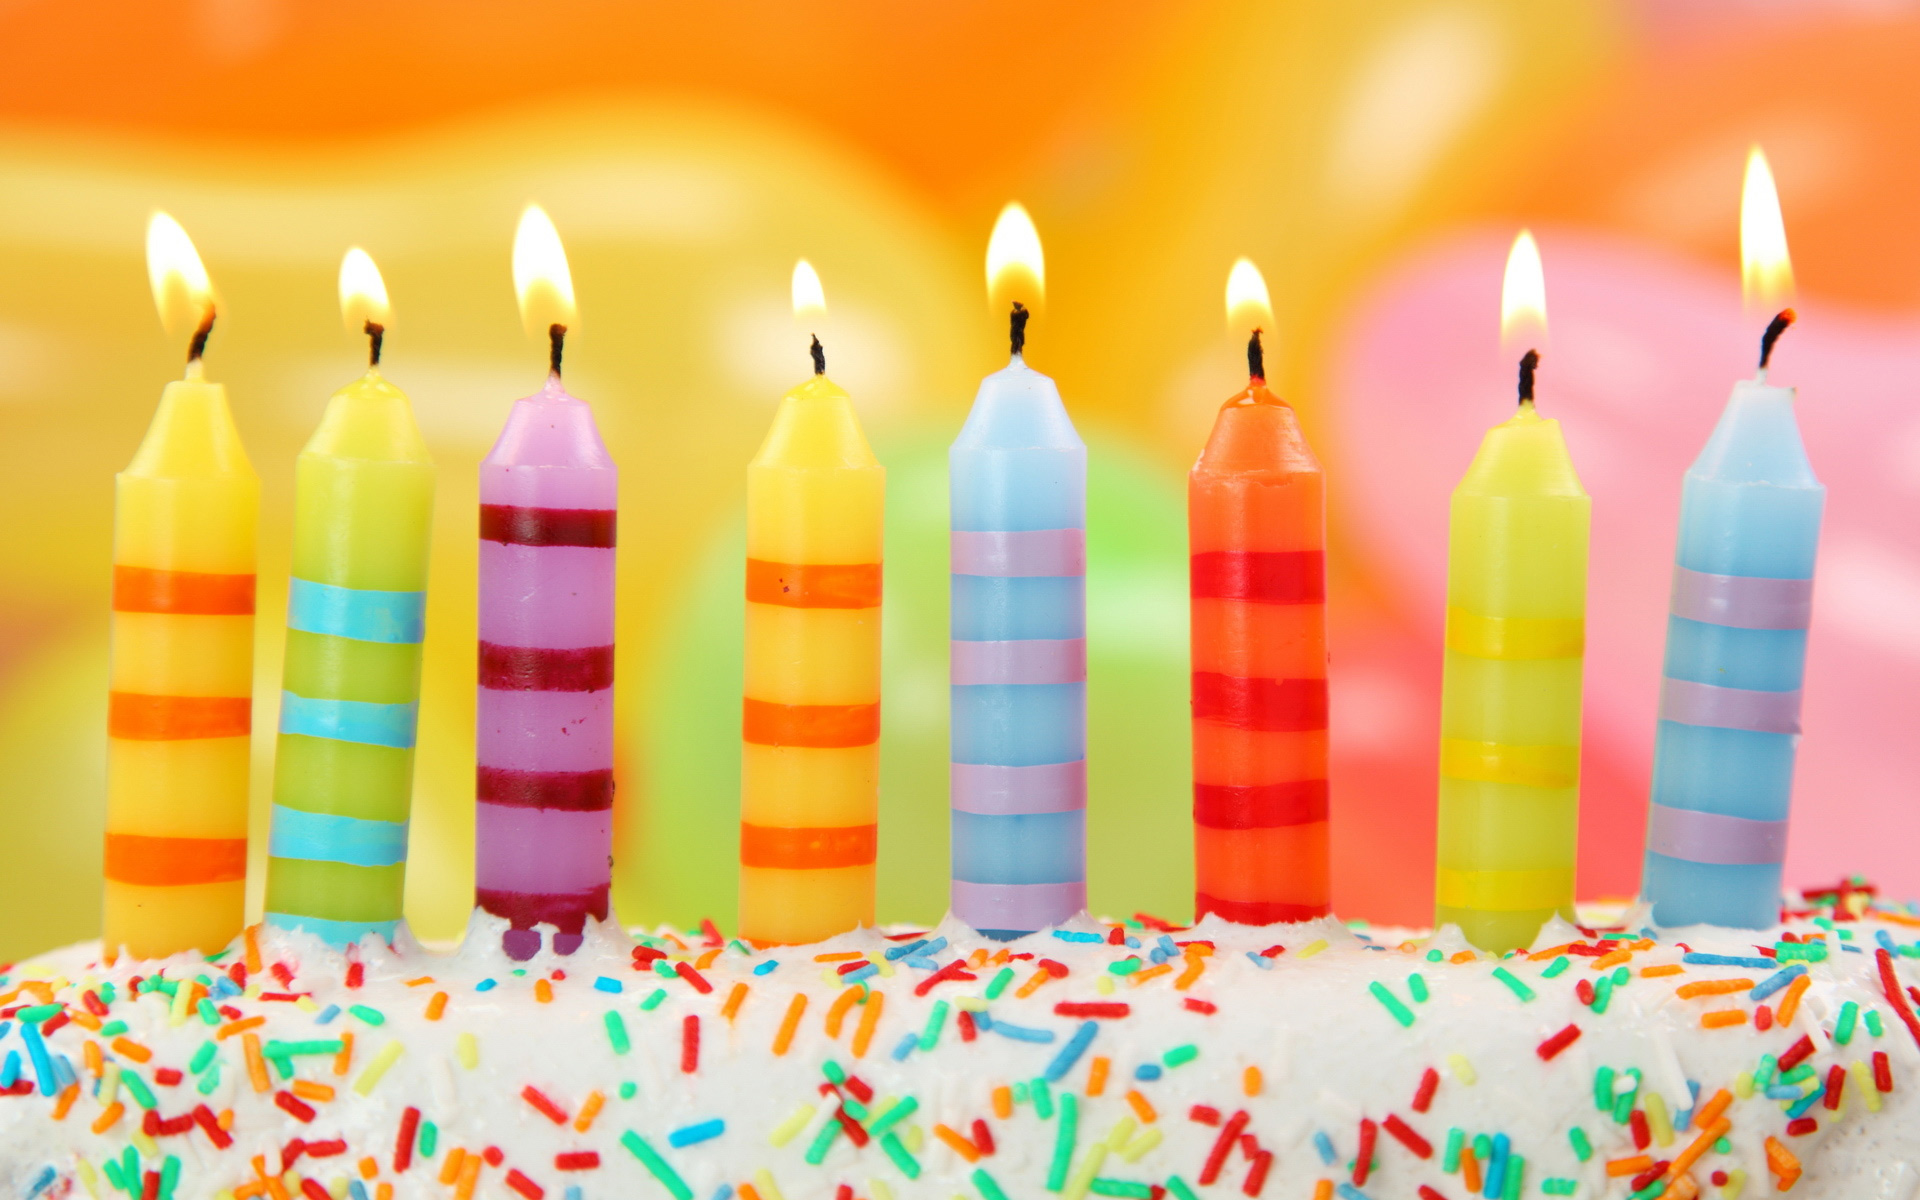 birthday bash wallpaper ; Birthday-Party-Candles-hd-wallpapers